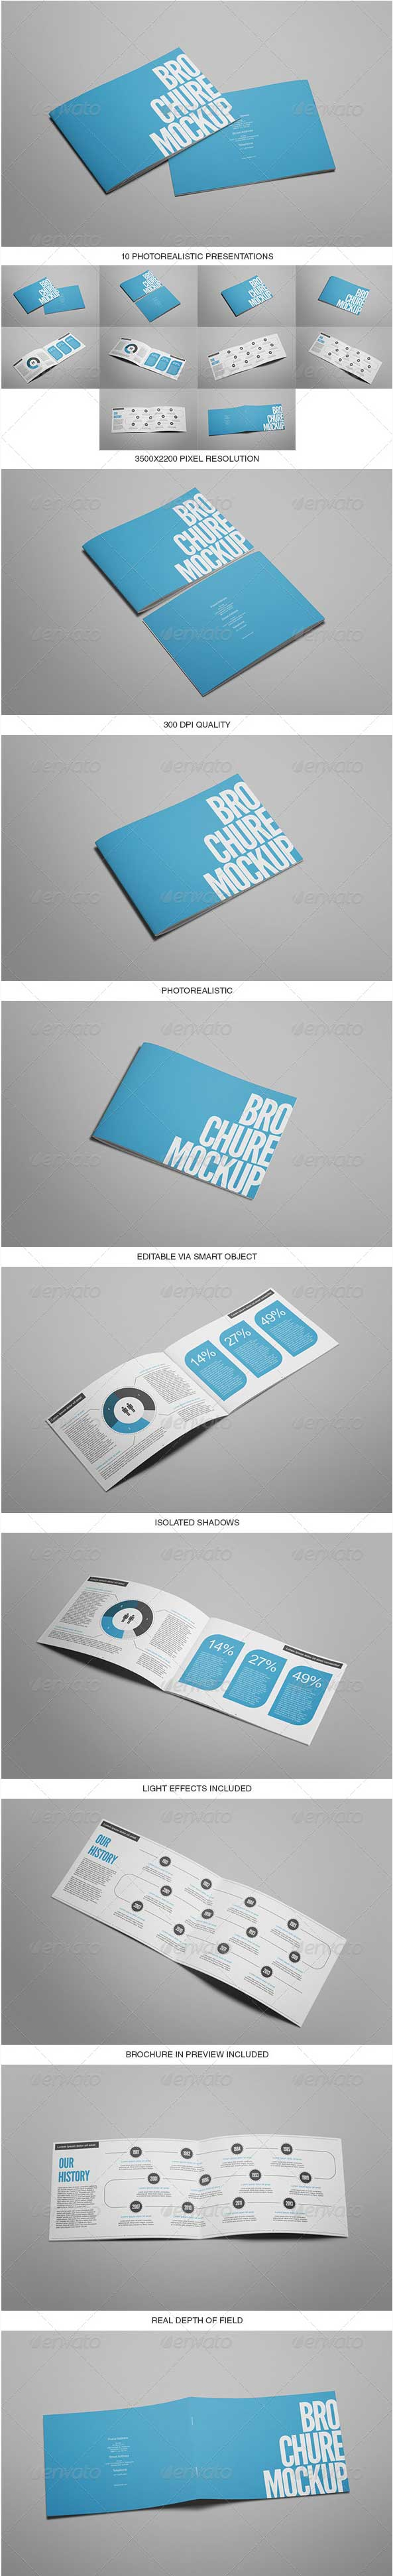 brochure-catalog-booklet-mockup